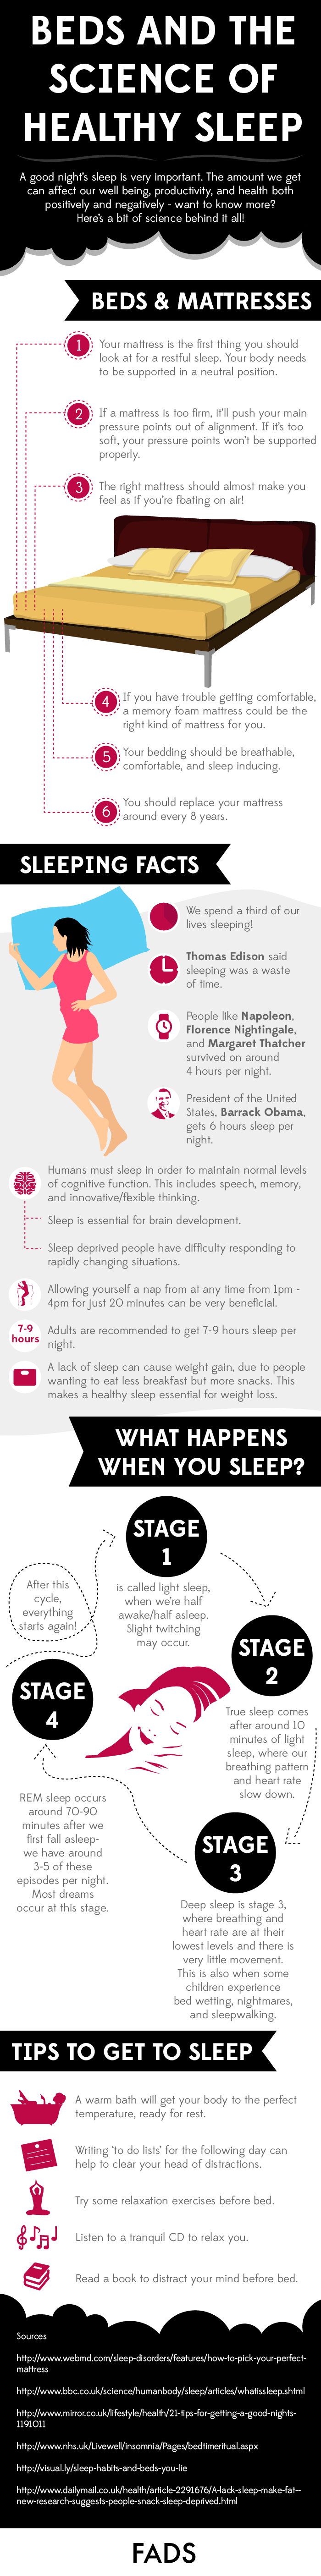 Beds And The Science Of Healthy Sleep